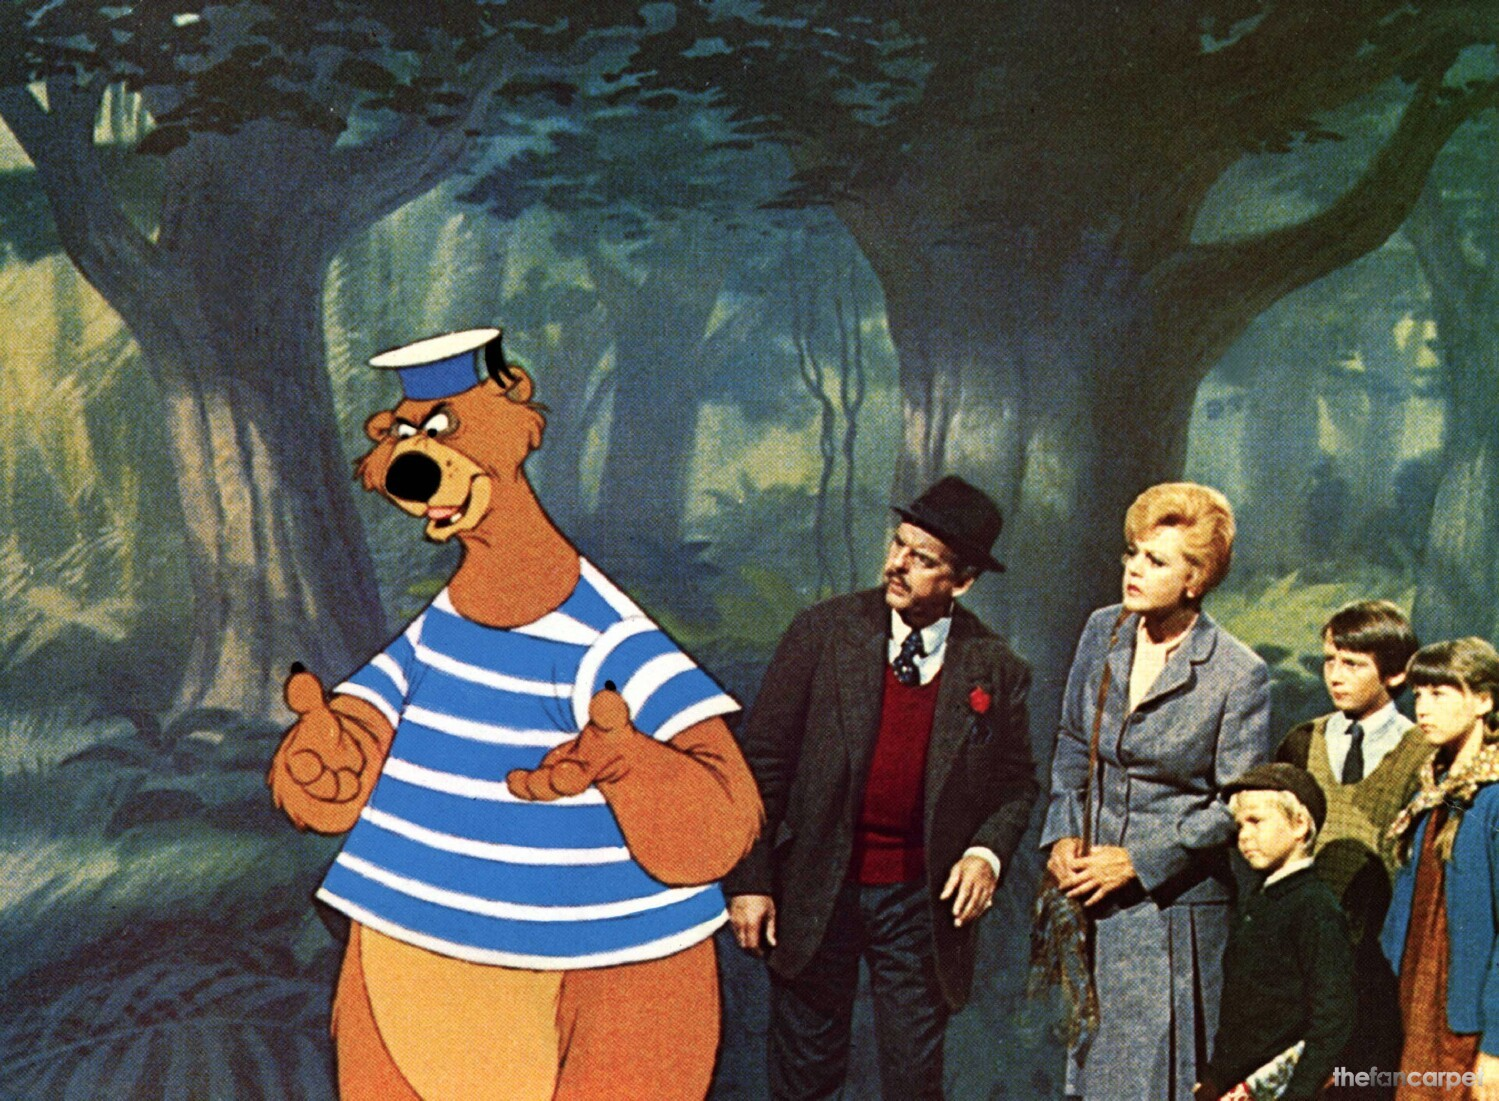 Bedknobs and Broomsticks images Bedknobs And Broomsticks ...